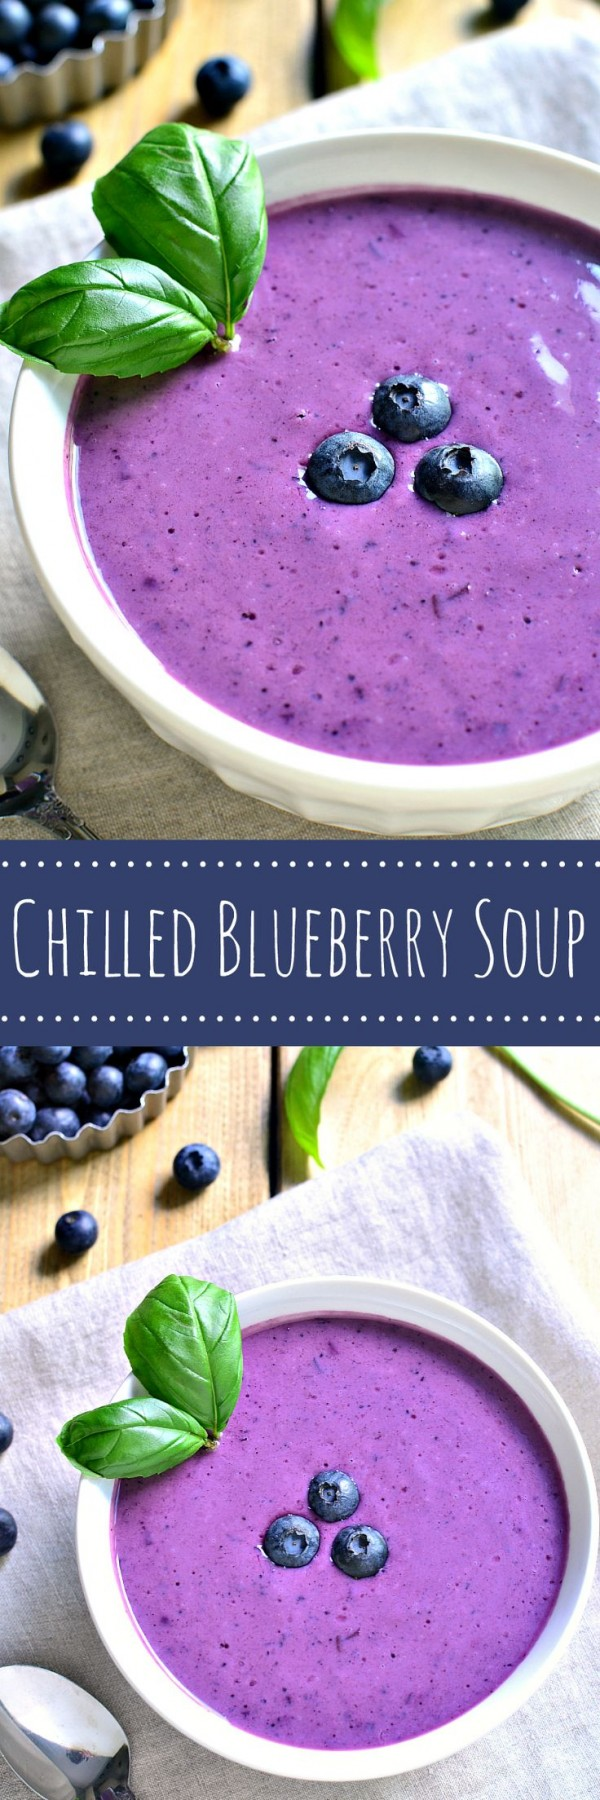 Get the recipe Chilled Blueberry Soup @recipes_to_go